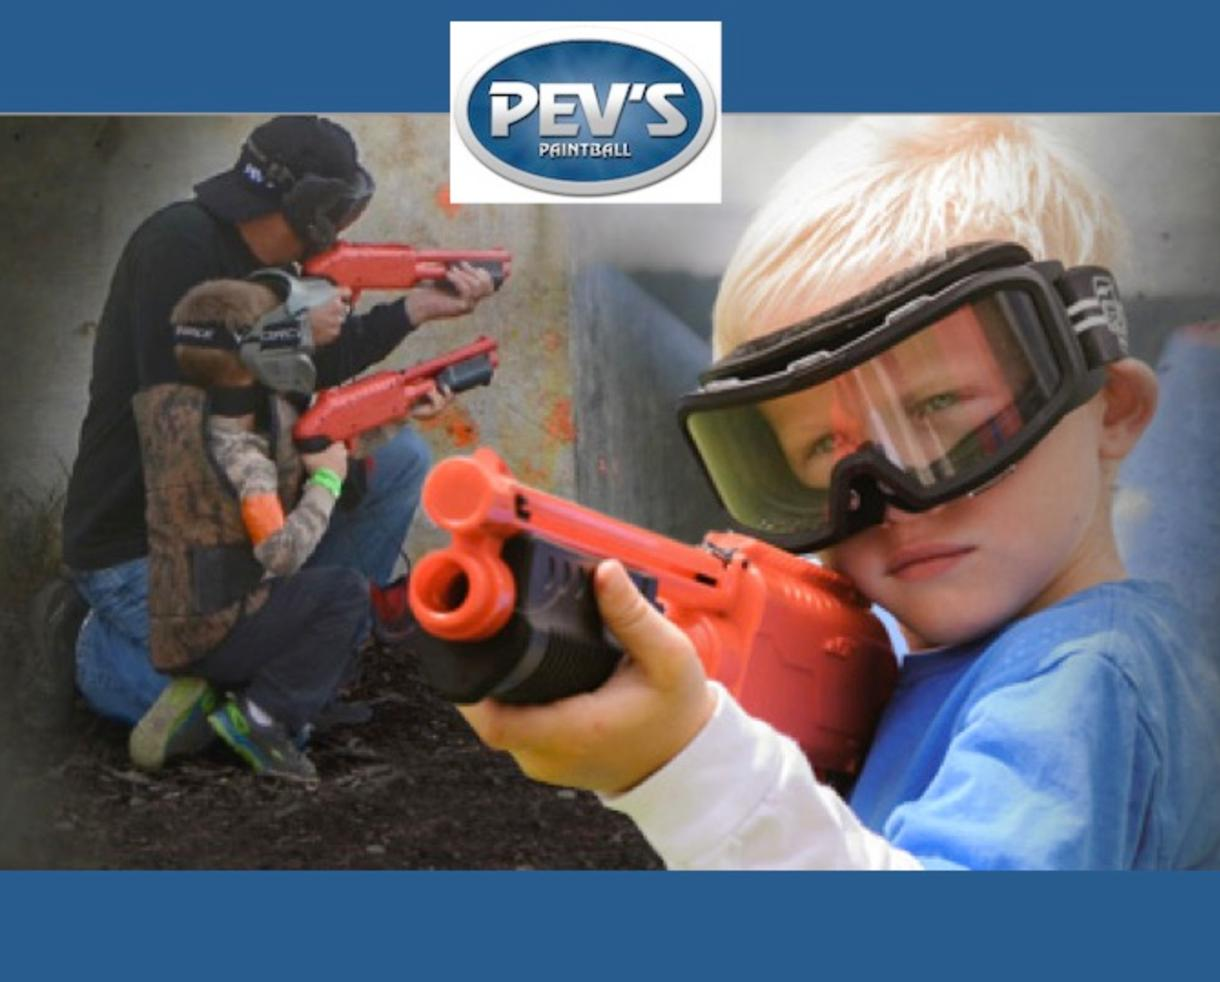 """$99 for Pev's """"PeeWee"""" Paintball Party for Up to 10 Kids Ages 6 to 9 - Aldie, VA (53% Off - $210 Value)"""